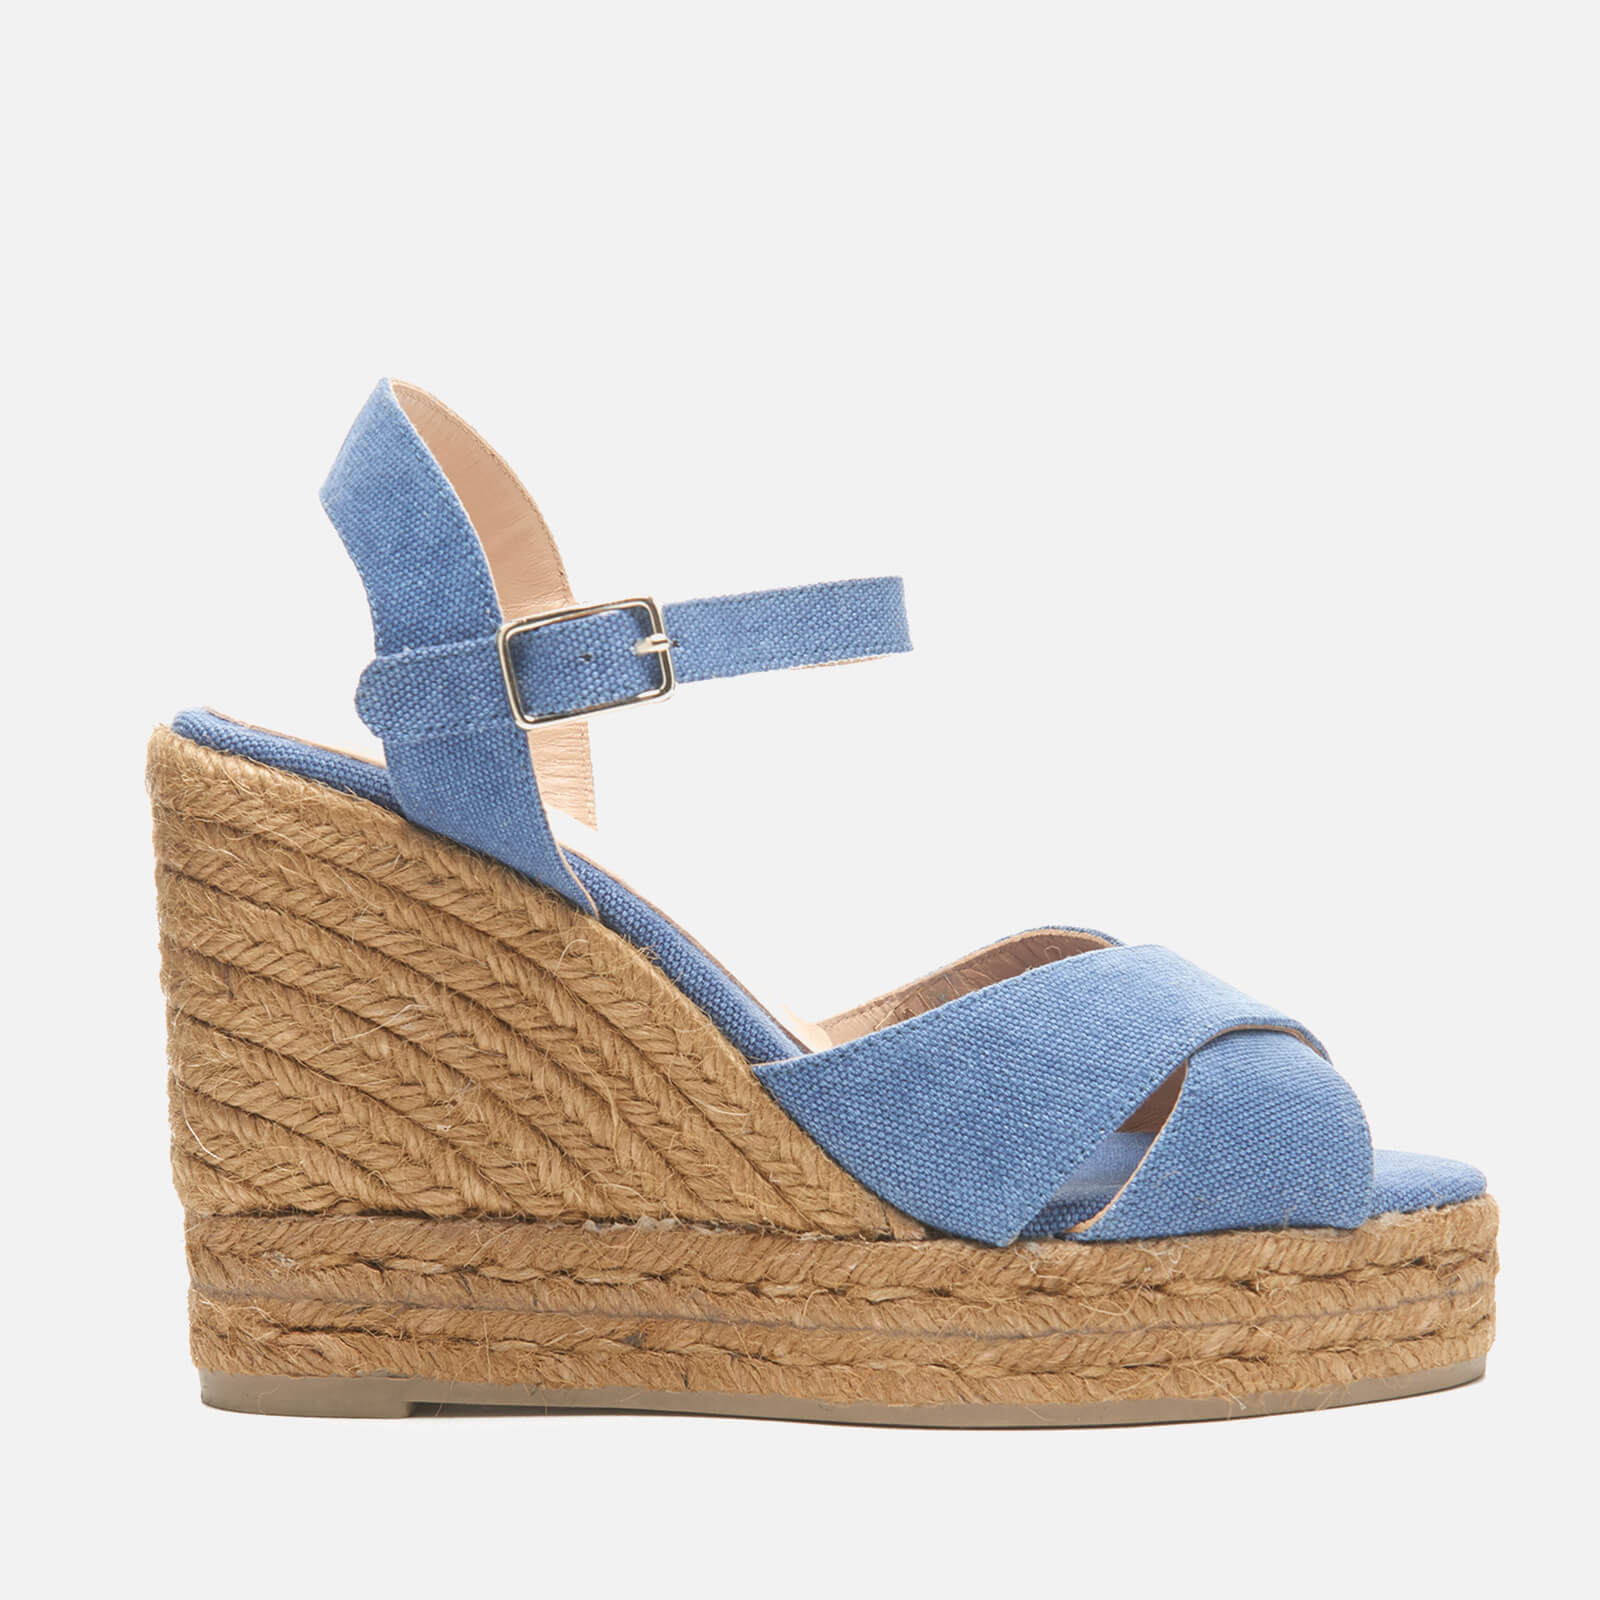 ac31acd5f29 Castaner Women s Blaudell Wedged Espadrille Sandals - Jeans - Free UK  Delivery over £50